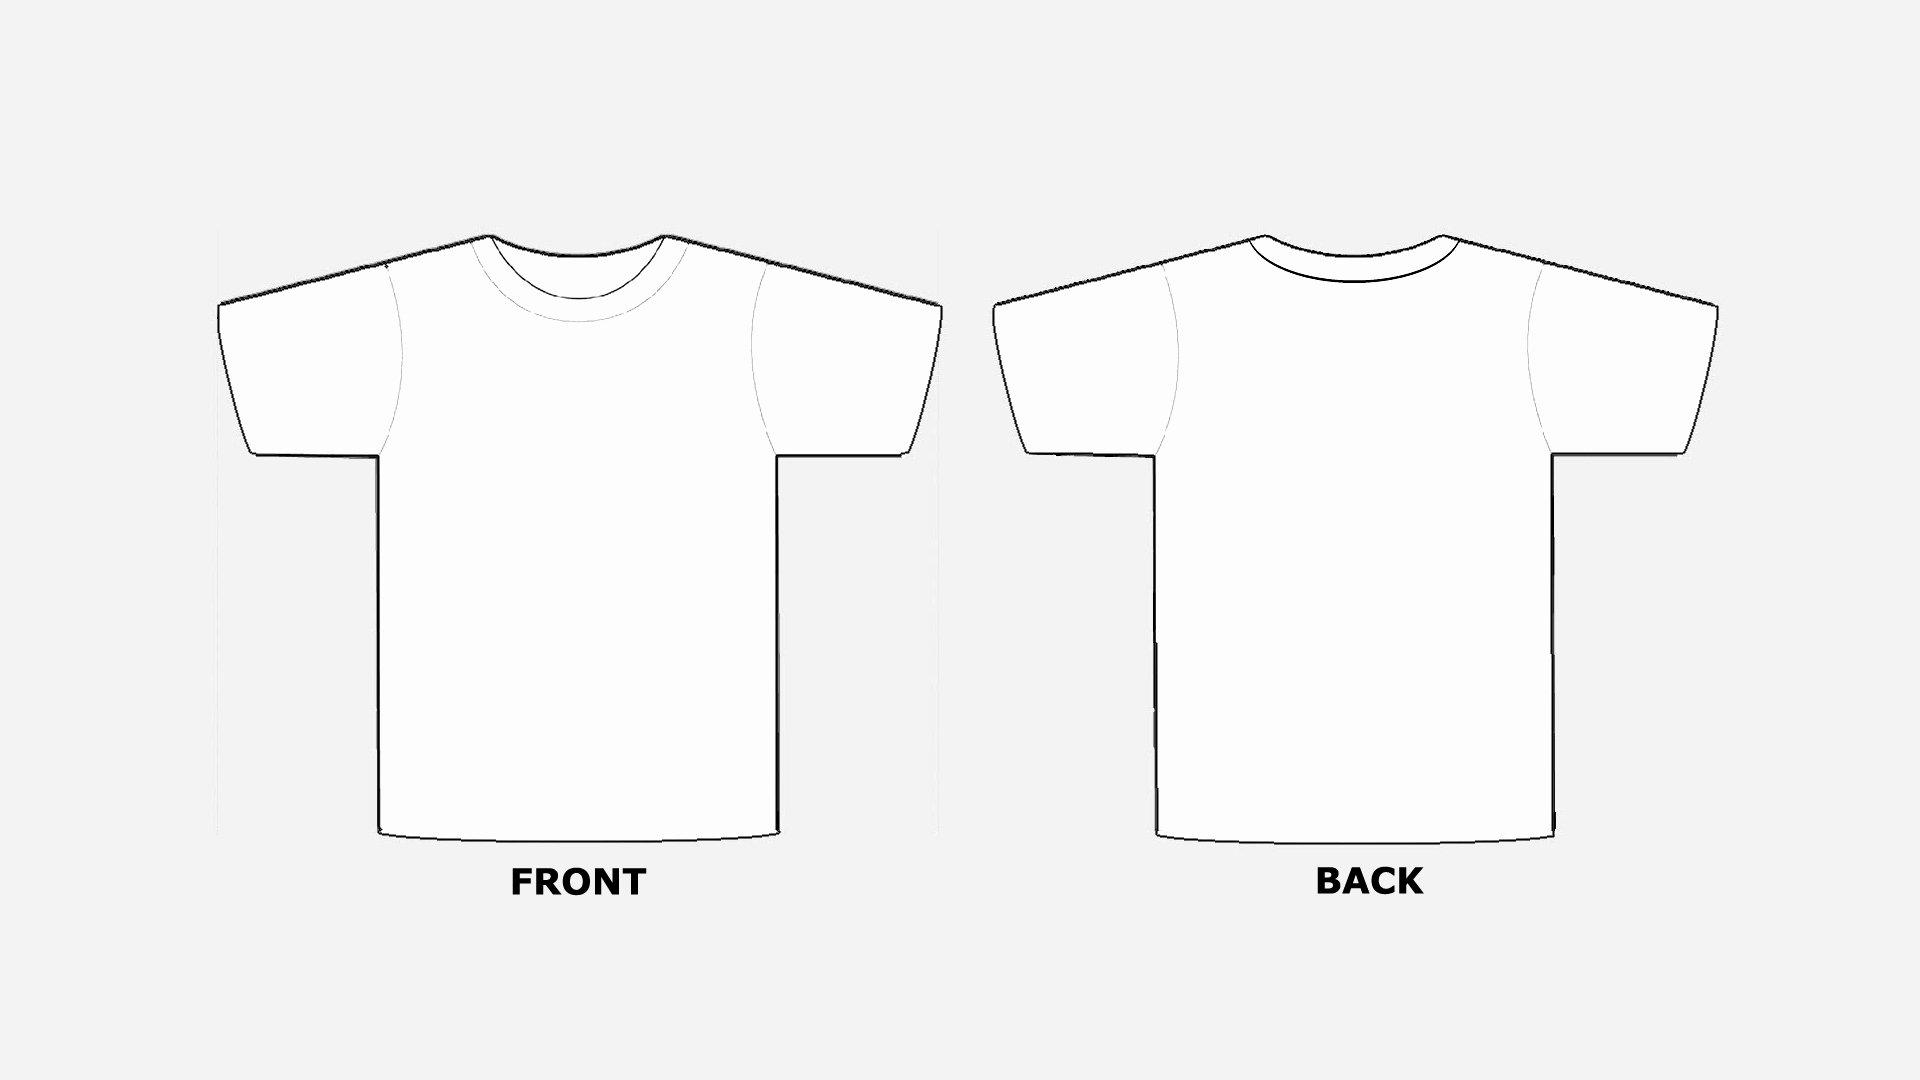 T Shirt Photoshop Template Lovely Blank Tshirt Template Printable In Hd Hd Wallpapers